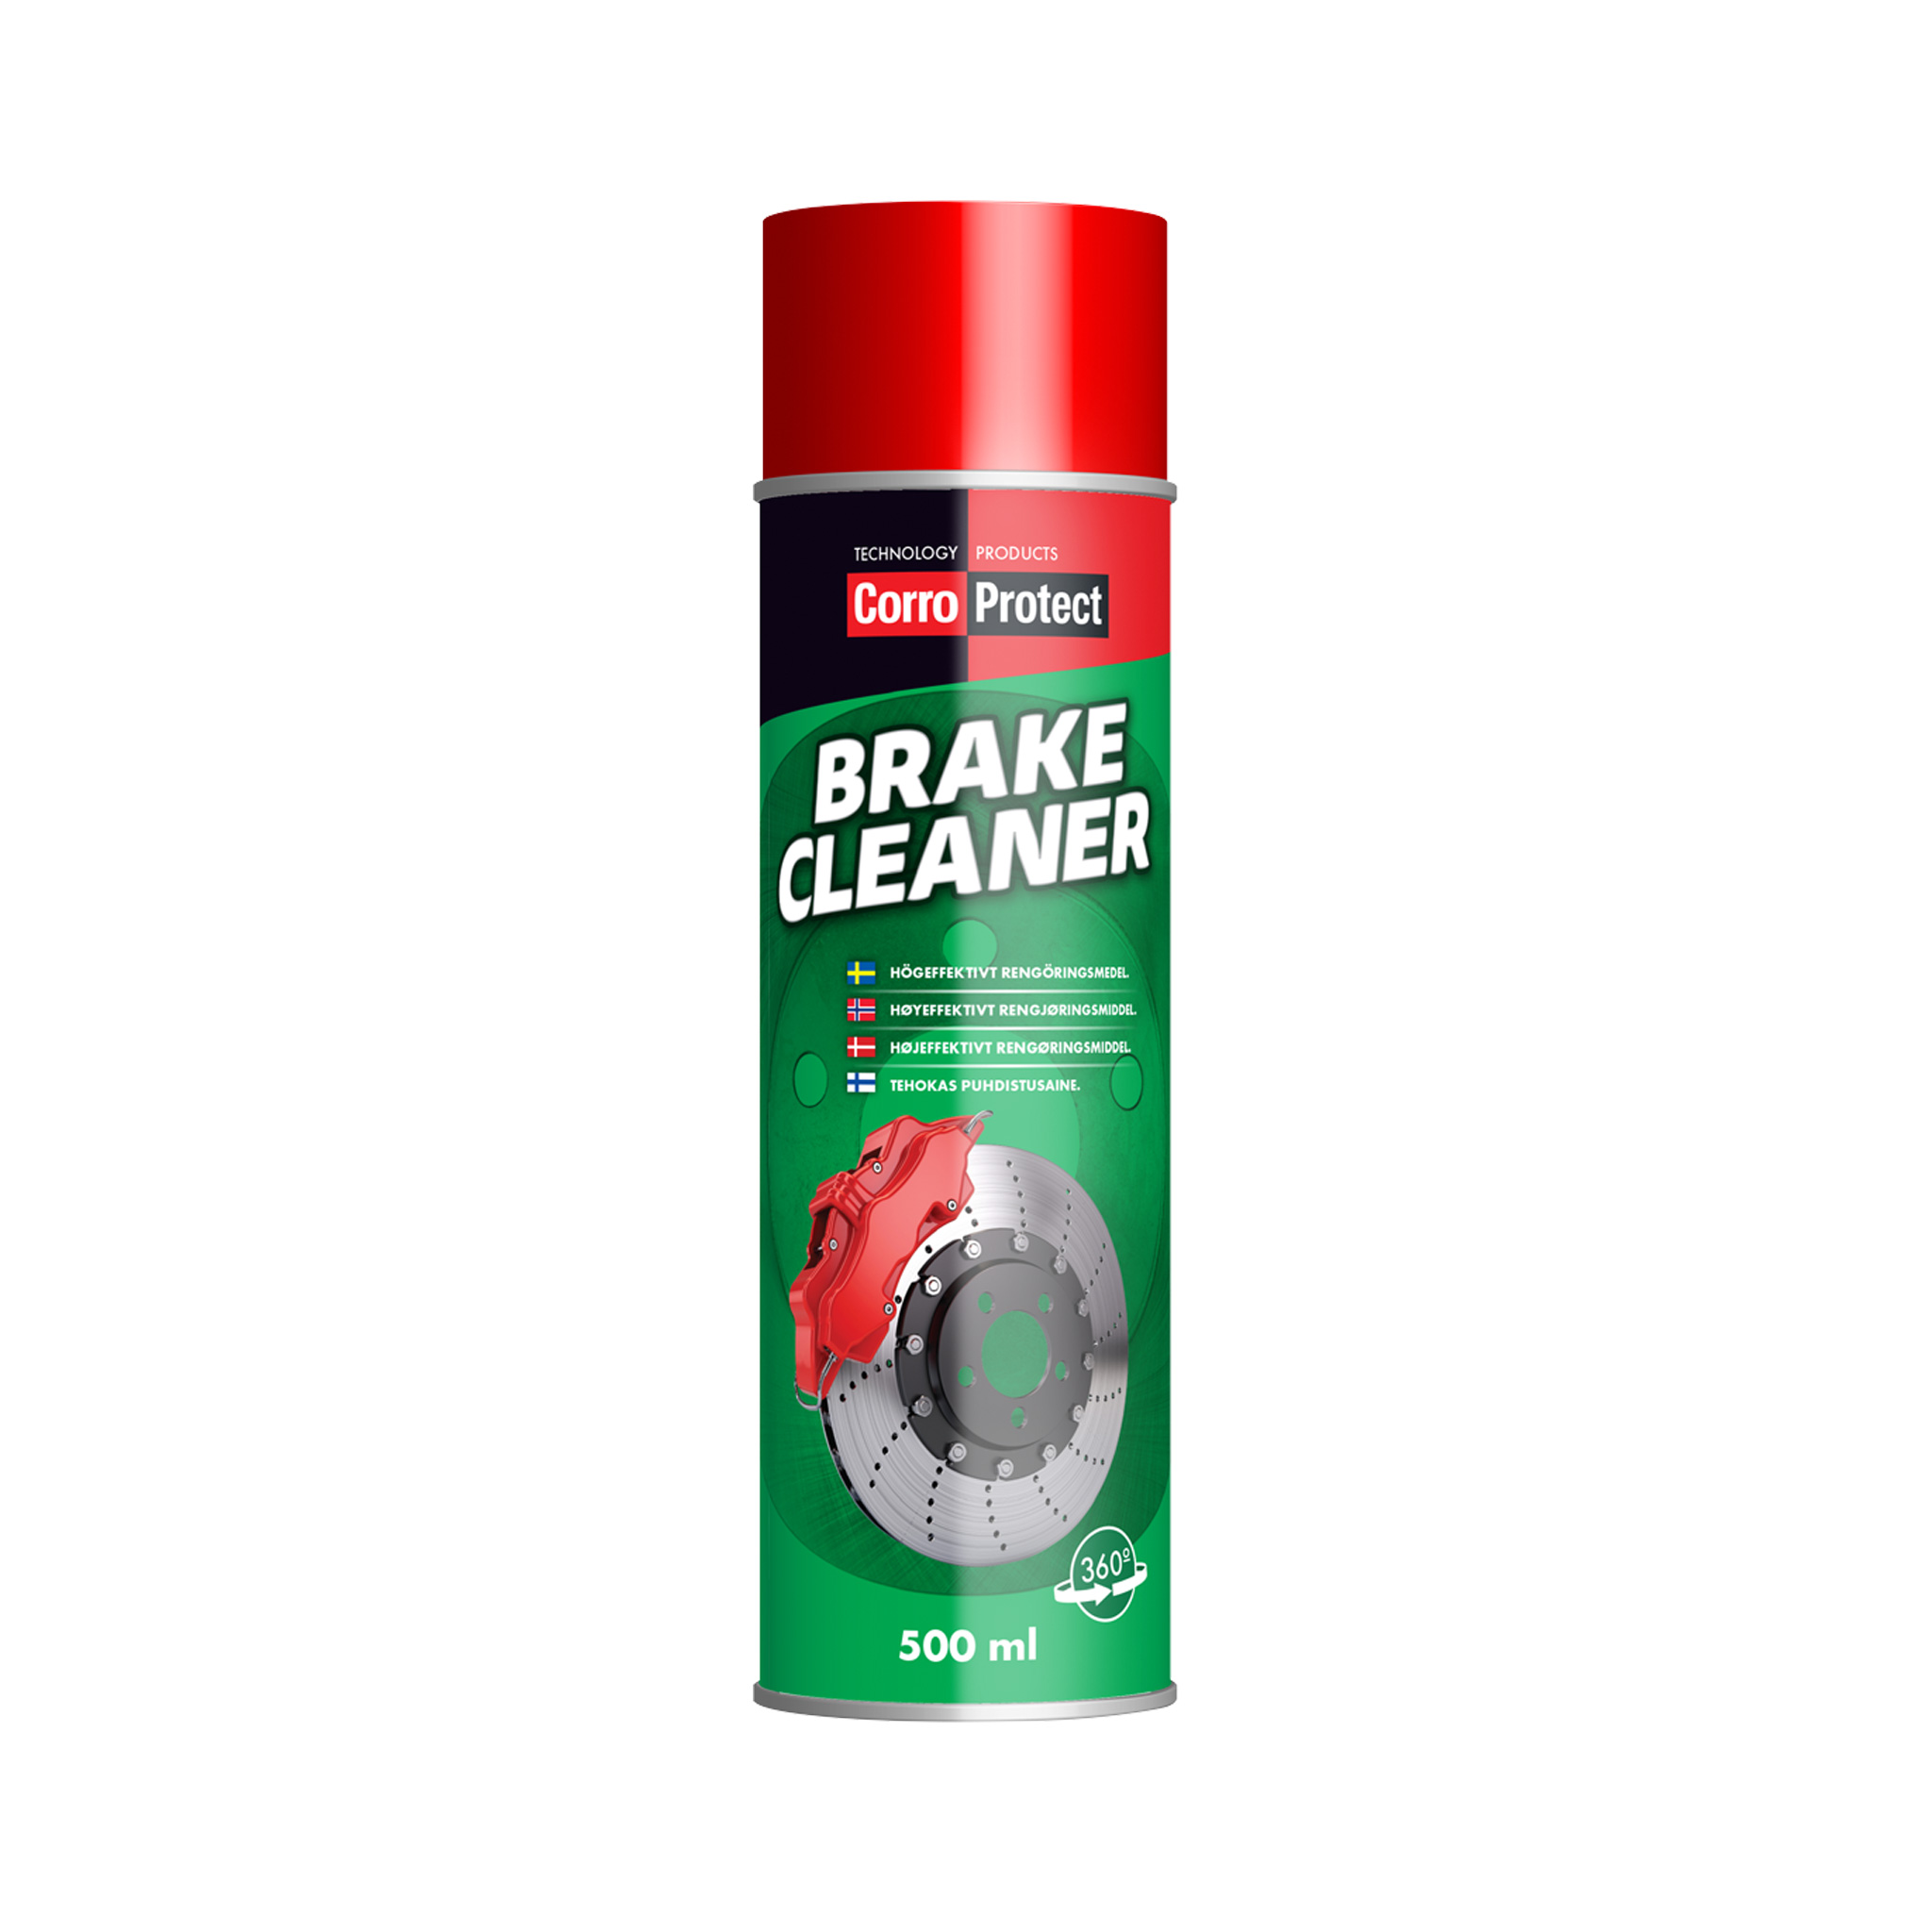 Bromsrengöring CorroProtect Brake Cleaner, 500 ml, 6